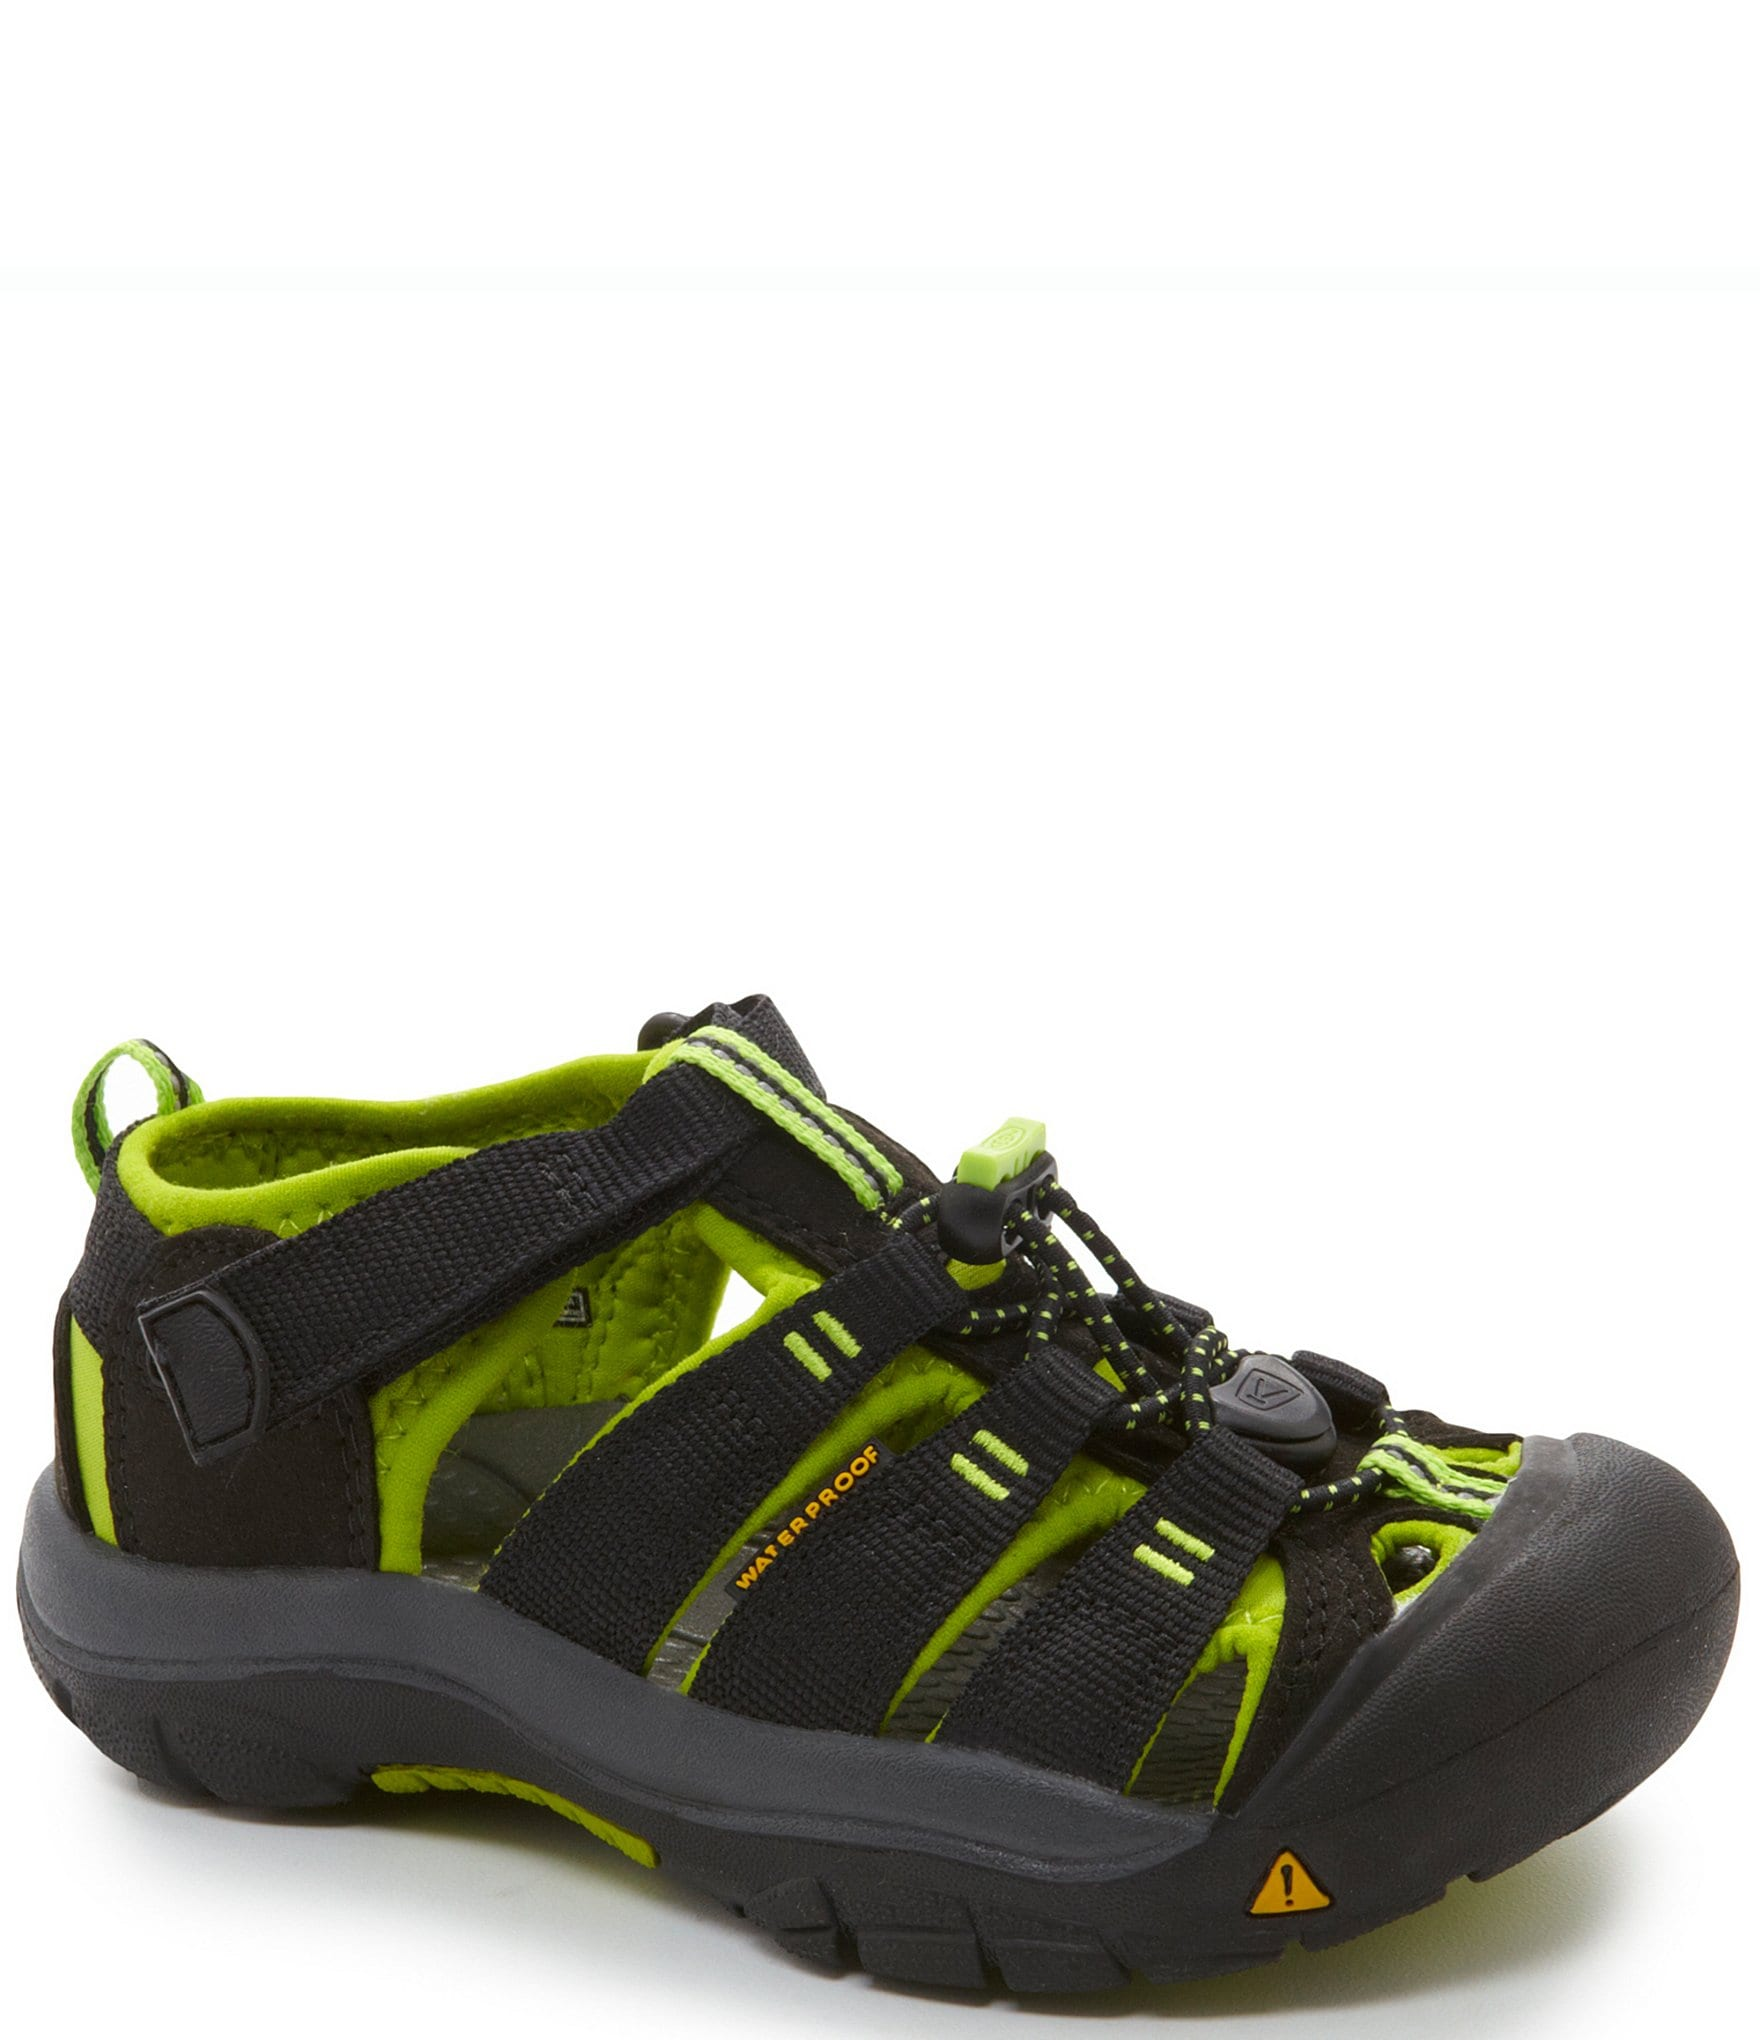 Keen Sandals Clearance Sale